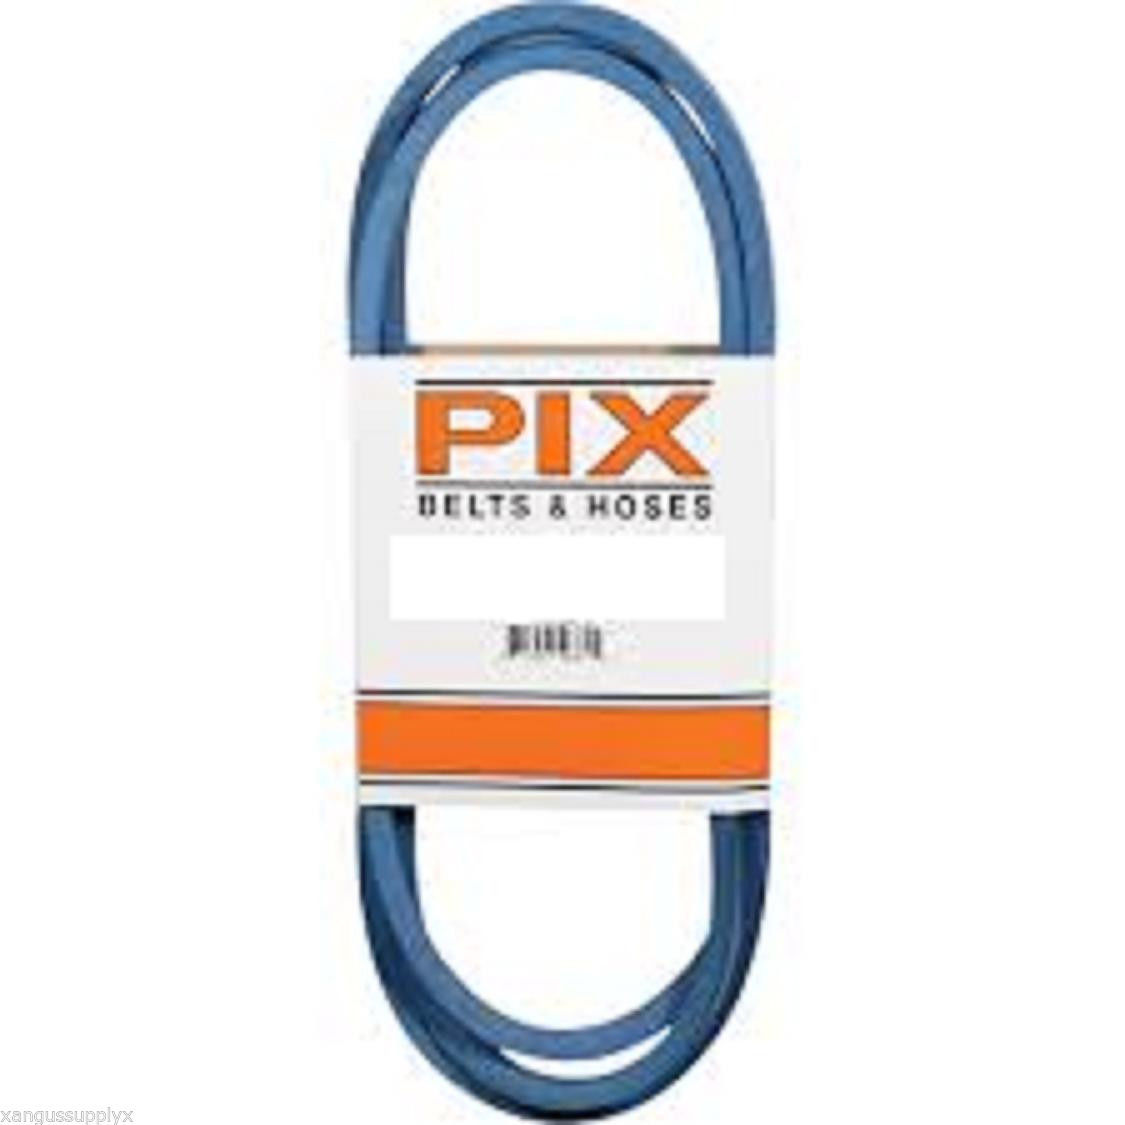 Made With Kevlar REPLACEMENT BELT FOR FERRIS 50-22061 / 50 22061 / 5022061 - $48.37